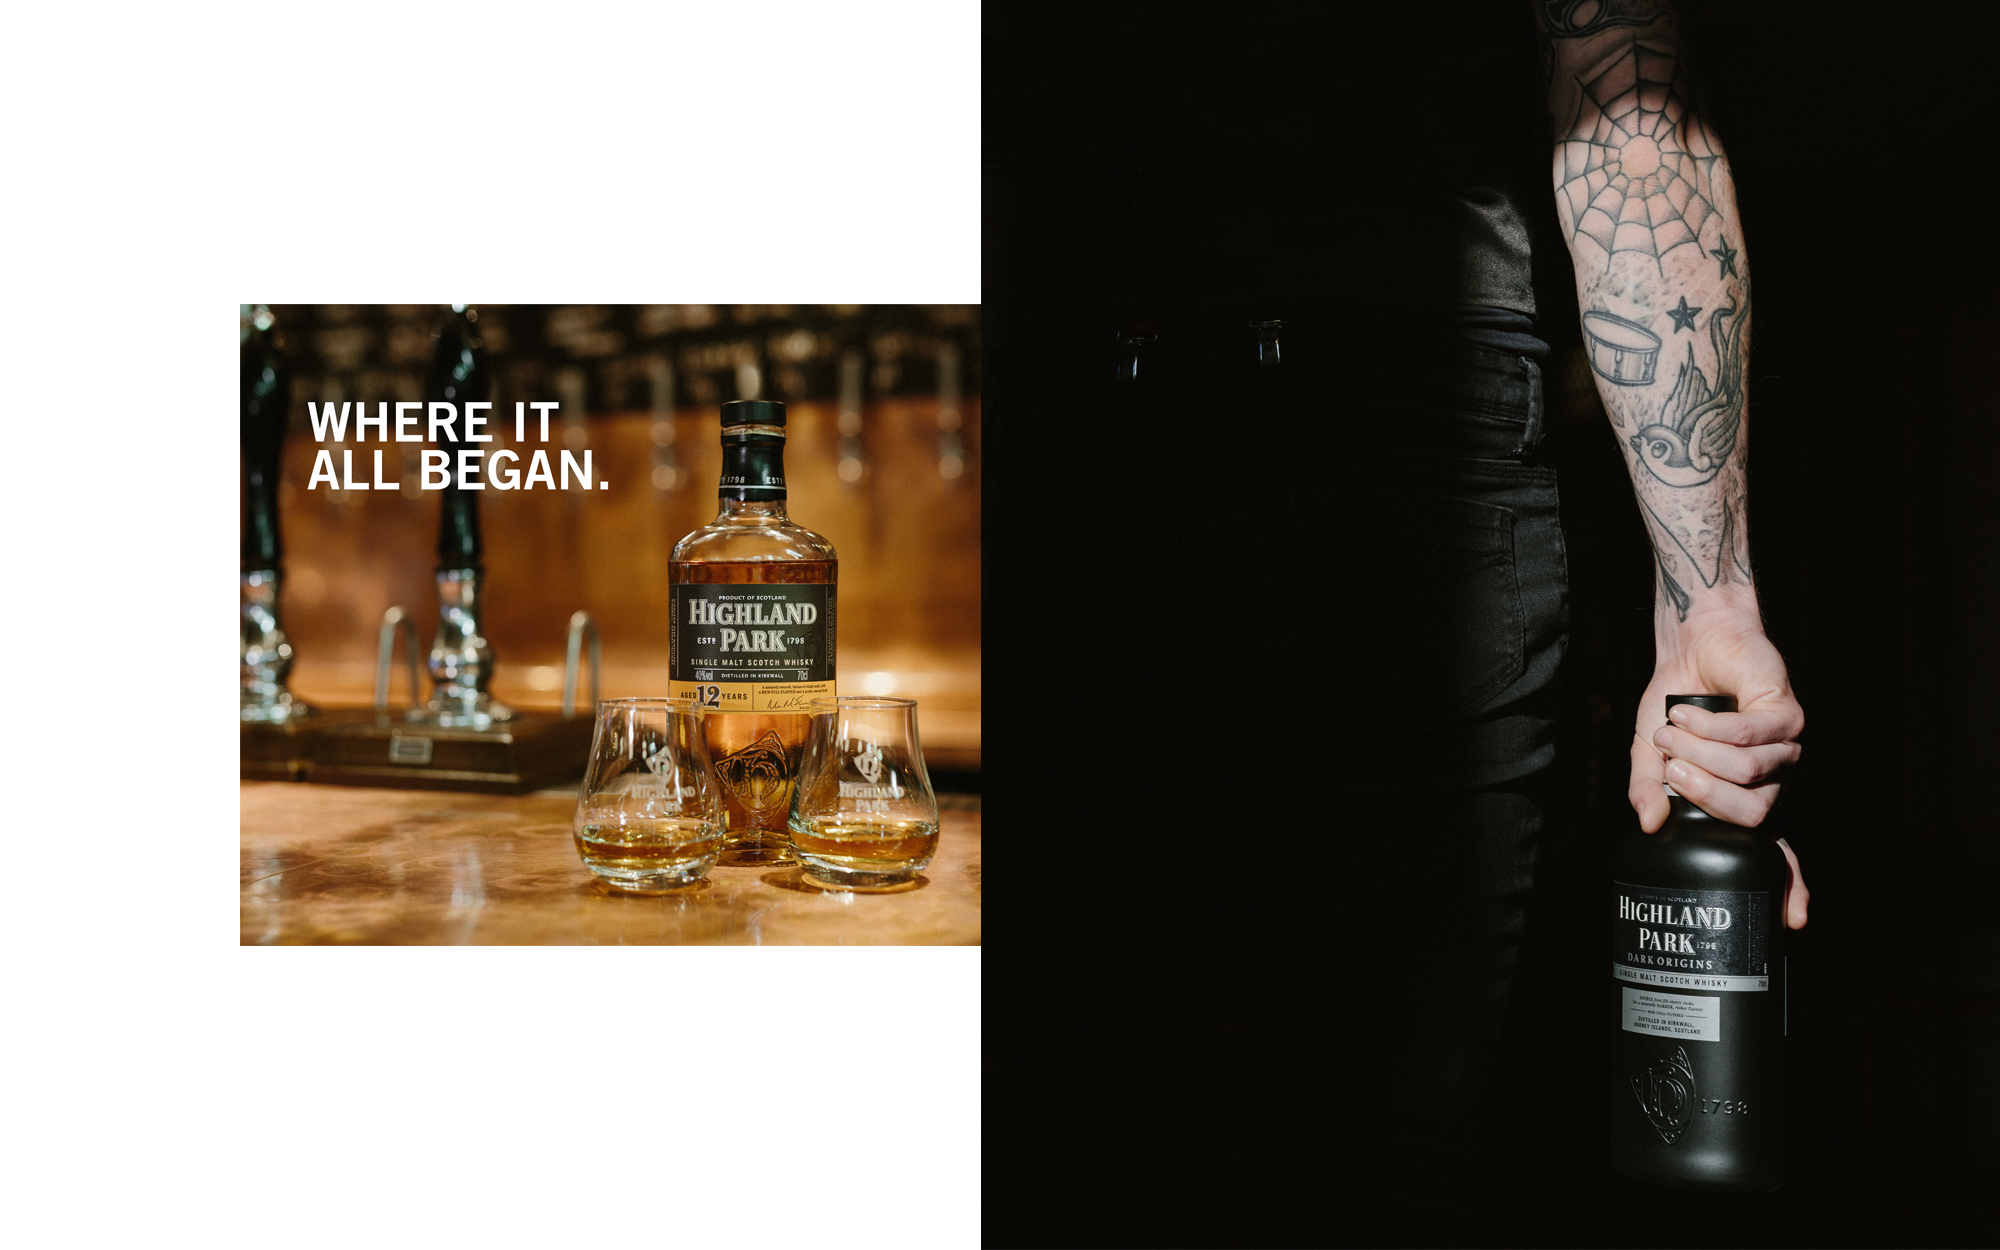 glasgow-marketing-photography-graphic-design-typography-social-media-highland-park-whisky-walnut-wasp.png